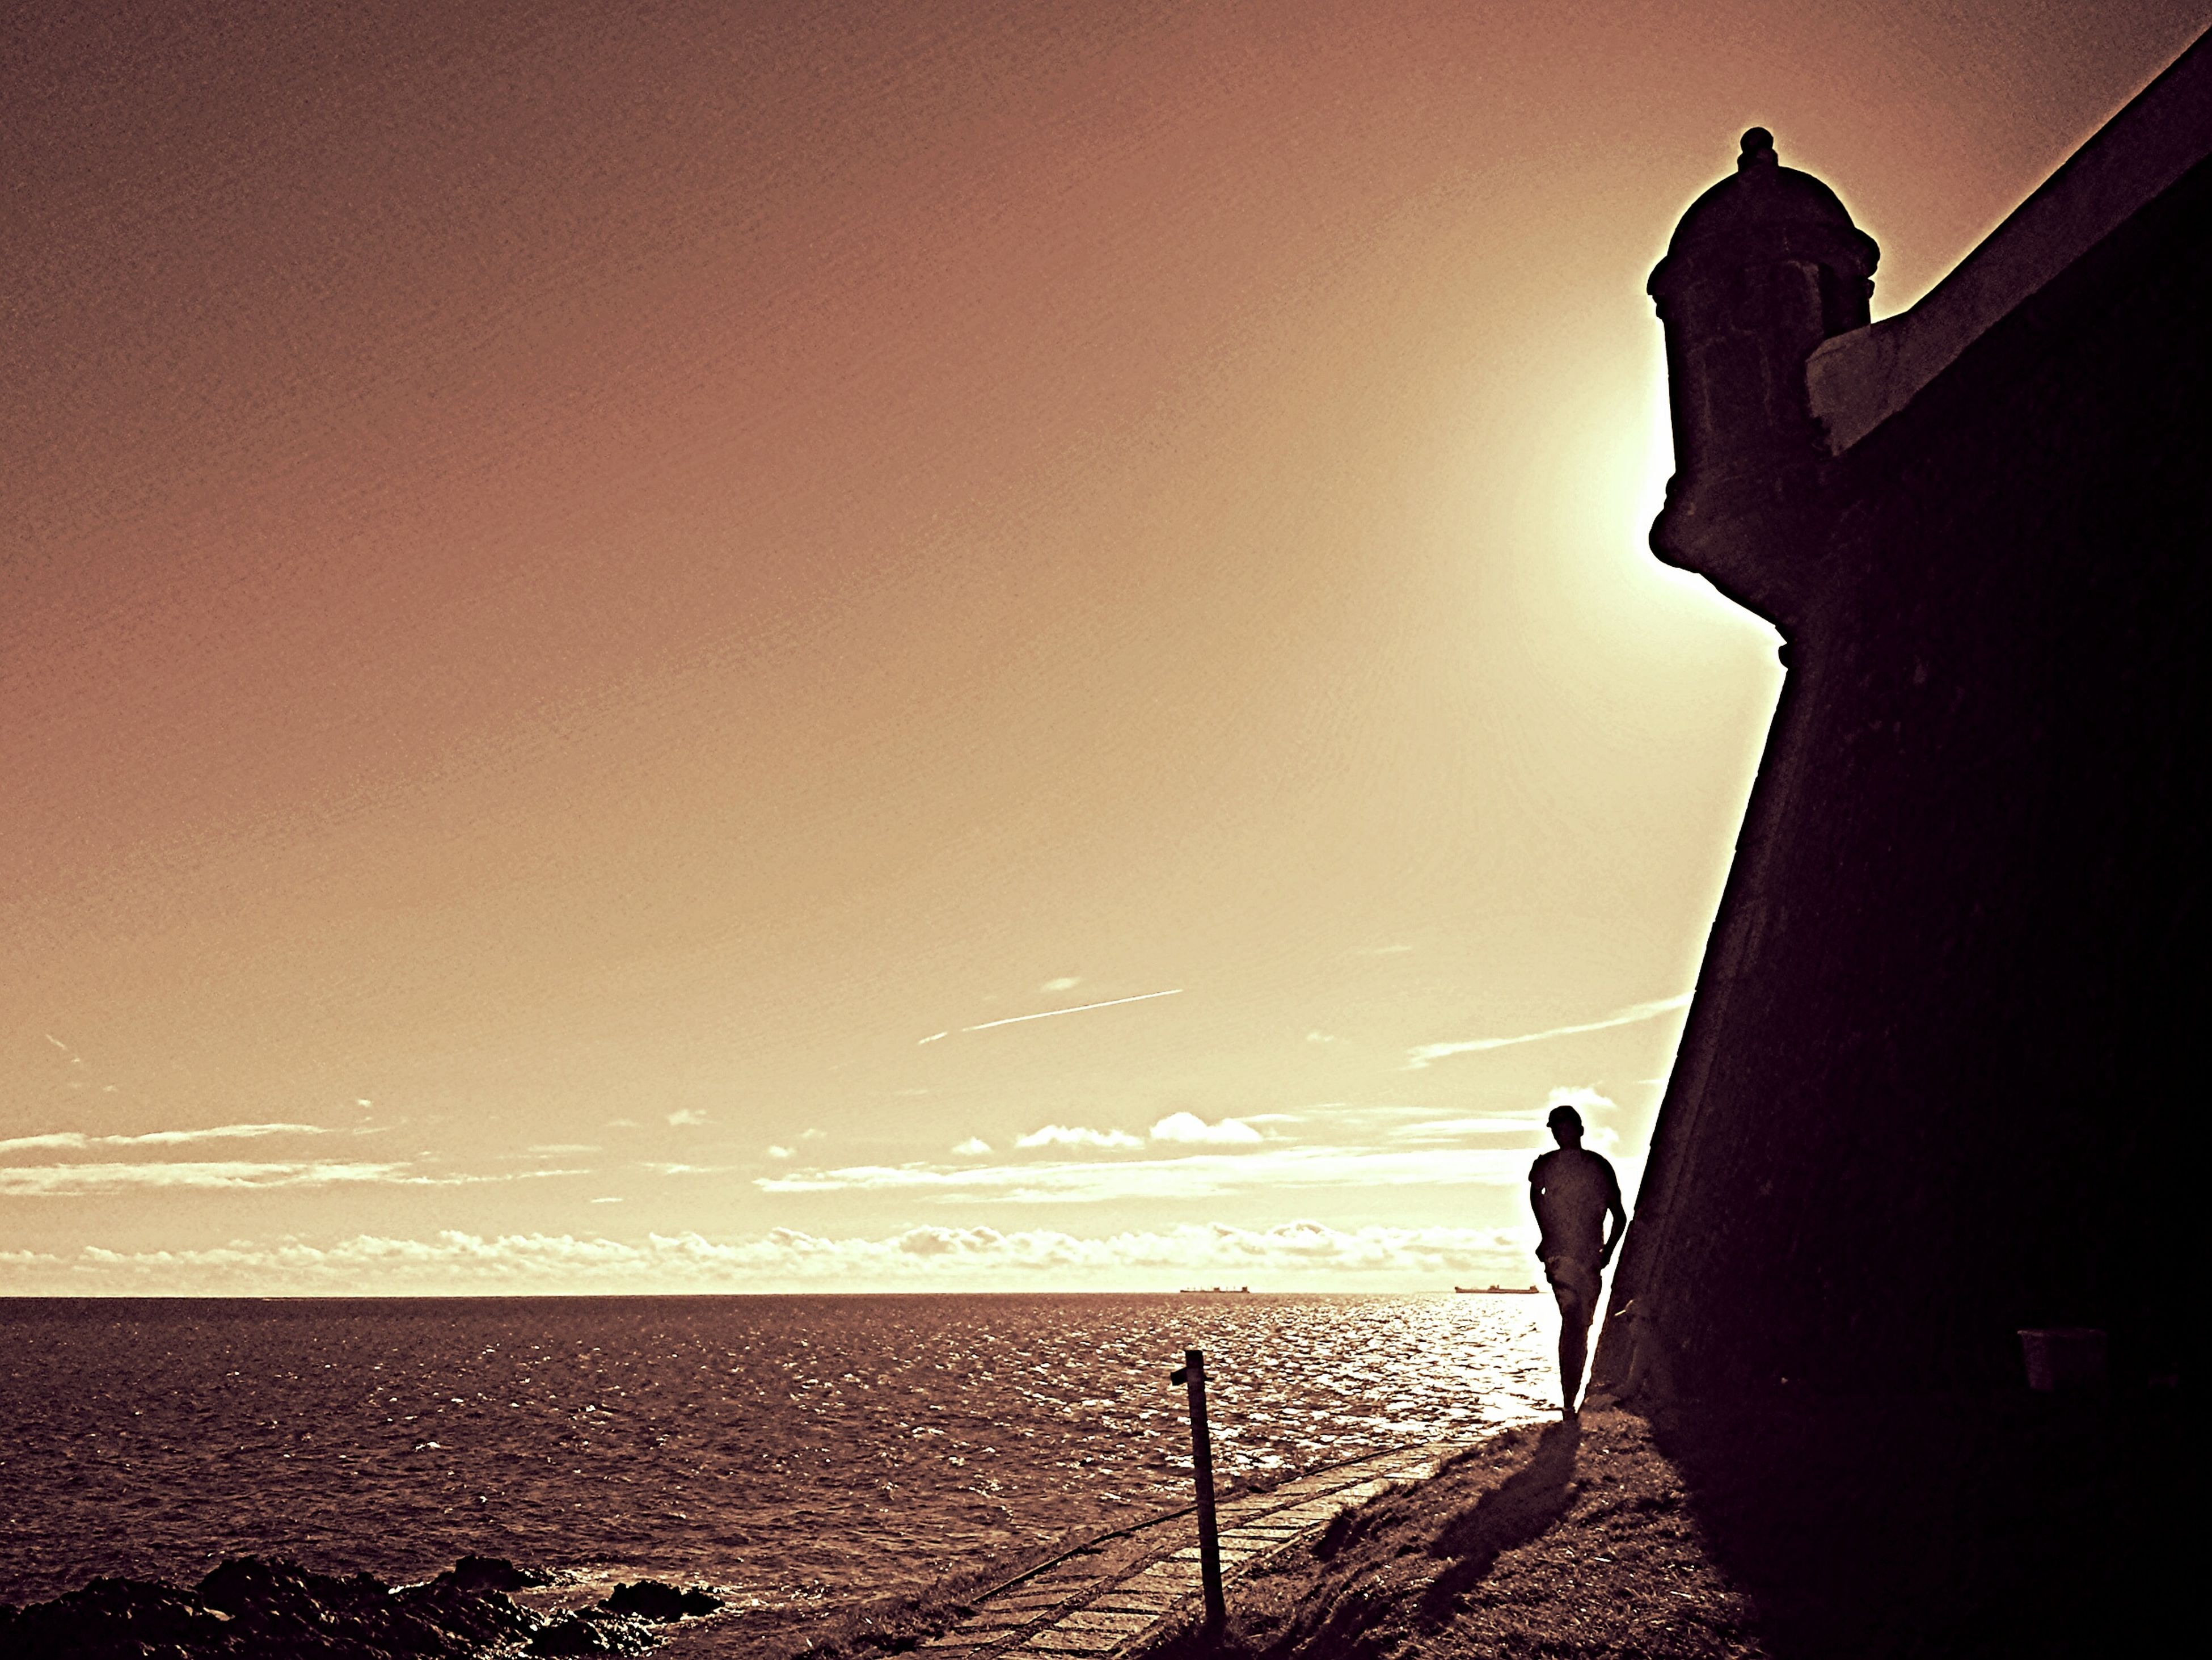 sea, silhouette, horizon over water, water, sky, sunset, built structure, railing, scenics, tranquility, architecture, full length, standing, copy space, nature, tranquil scene, men, beach